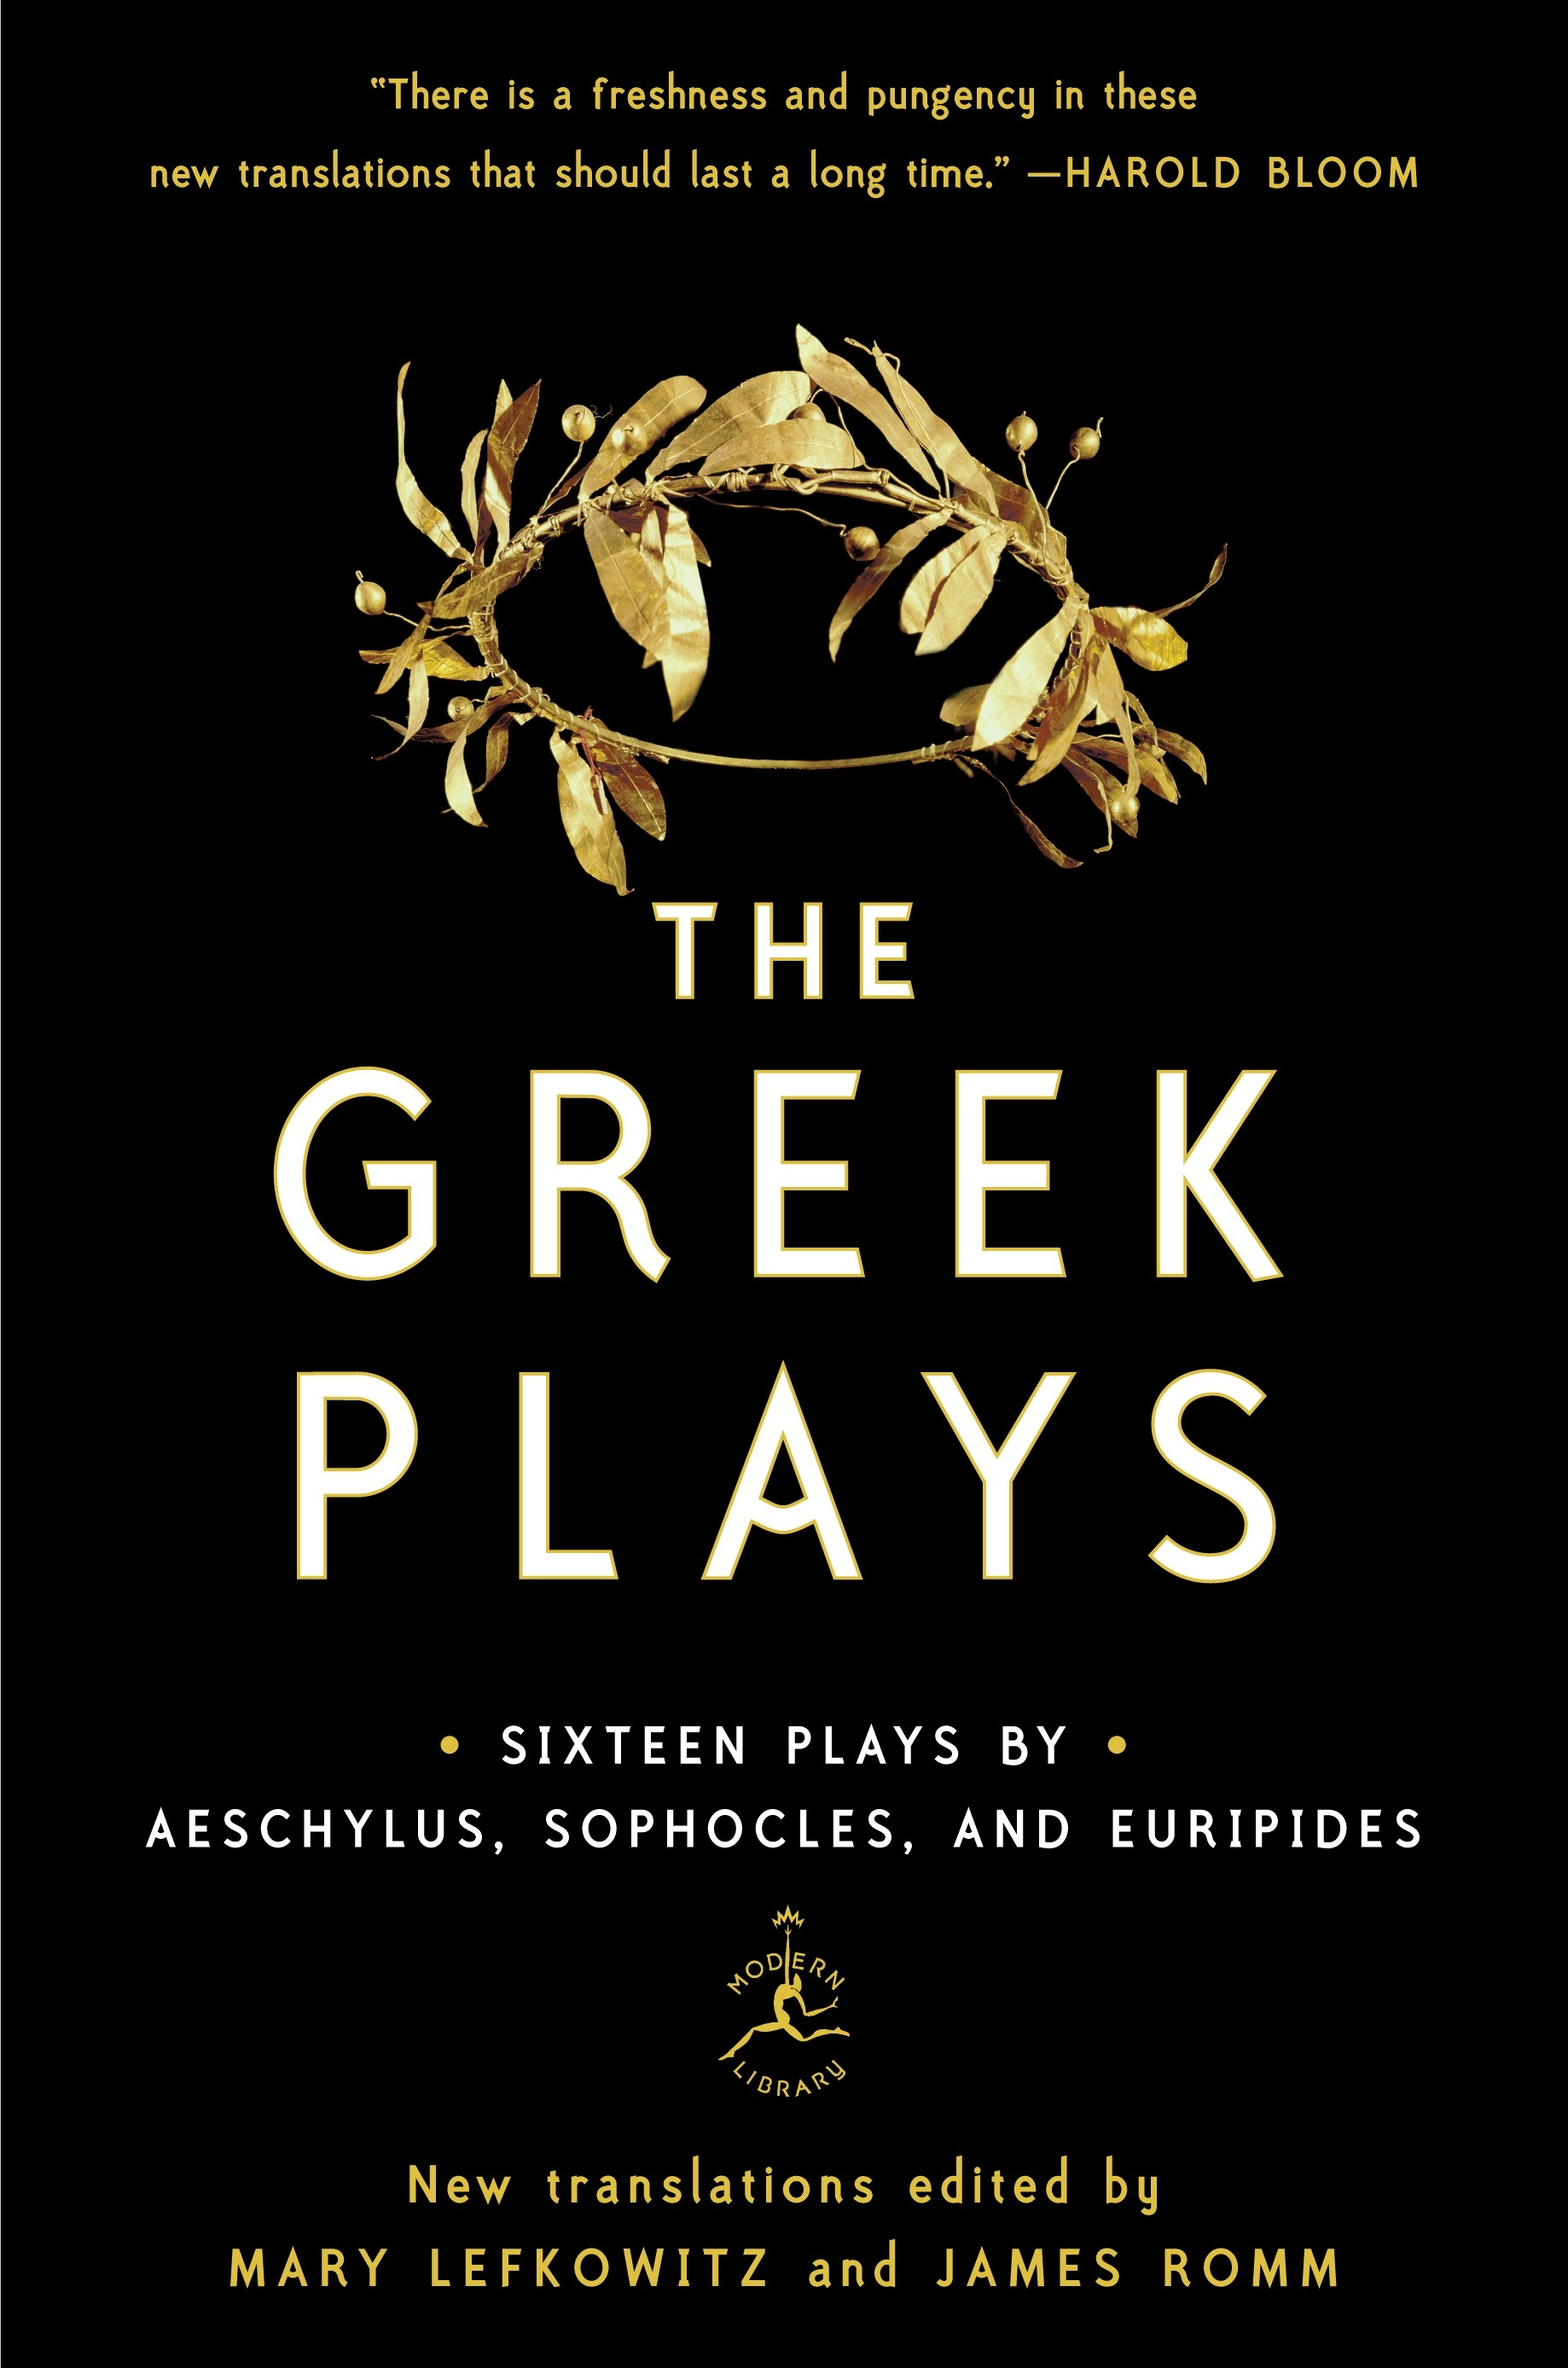 The Greek Plays: Sixteen Plays by Aeschylus, Sophocles, and Euripides (Modern Library Classics (Paperback))